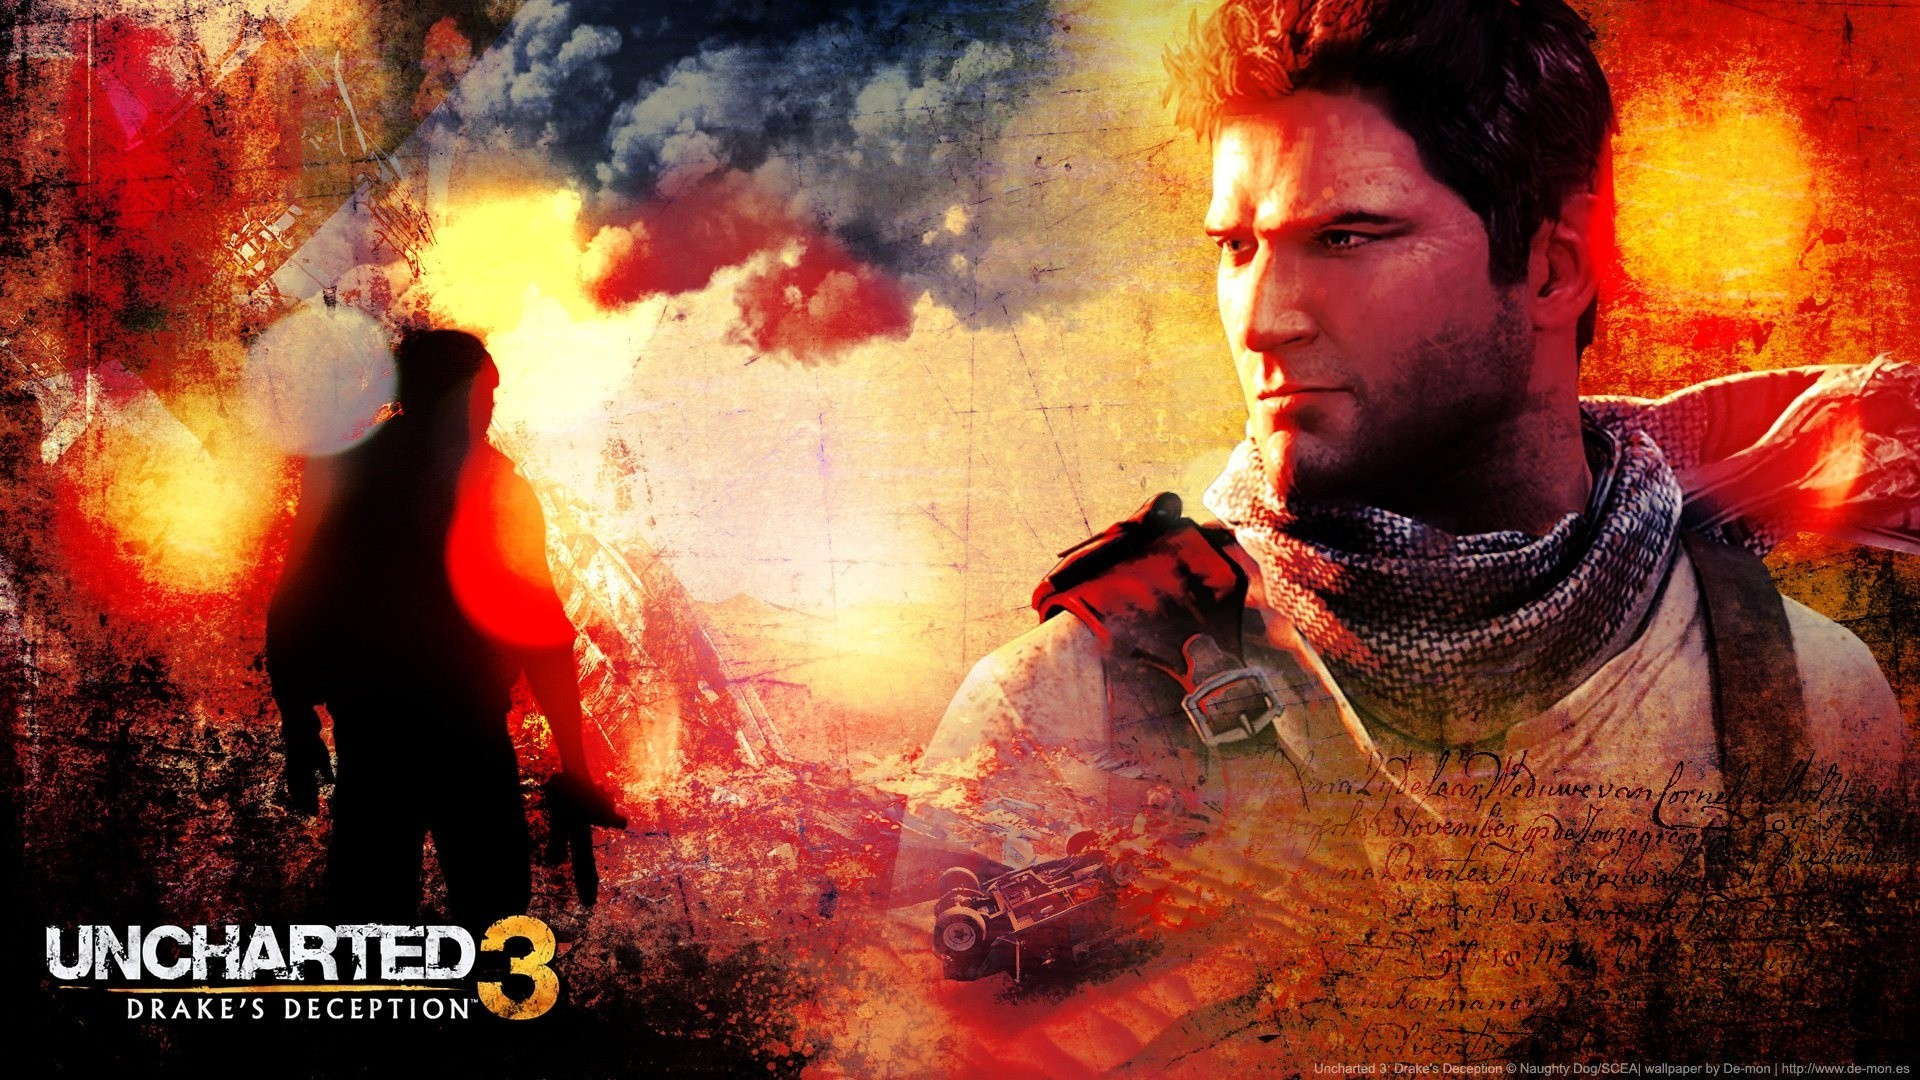 Uncharted 3 Drakes Deception Phone Wallpapers